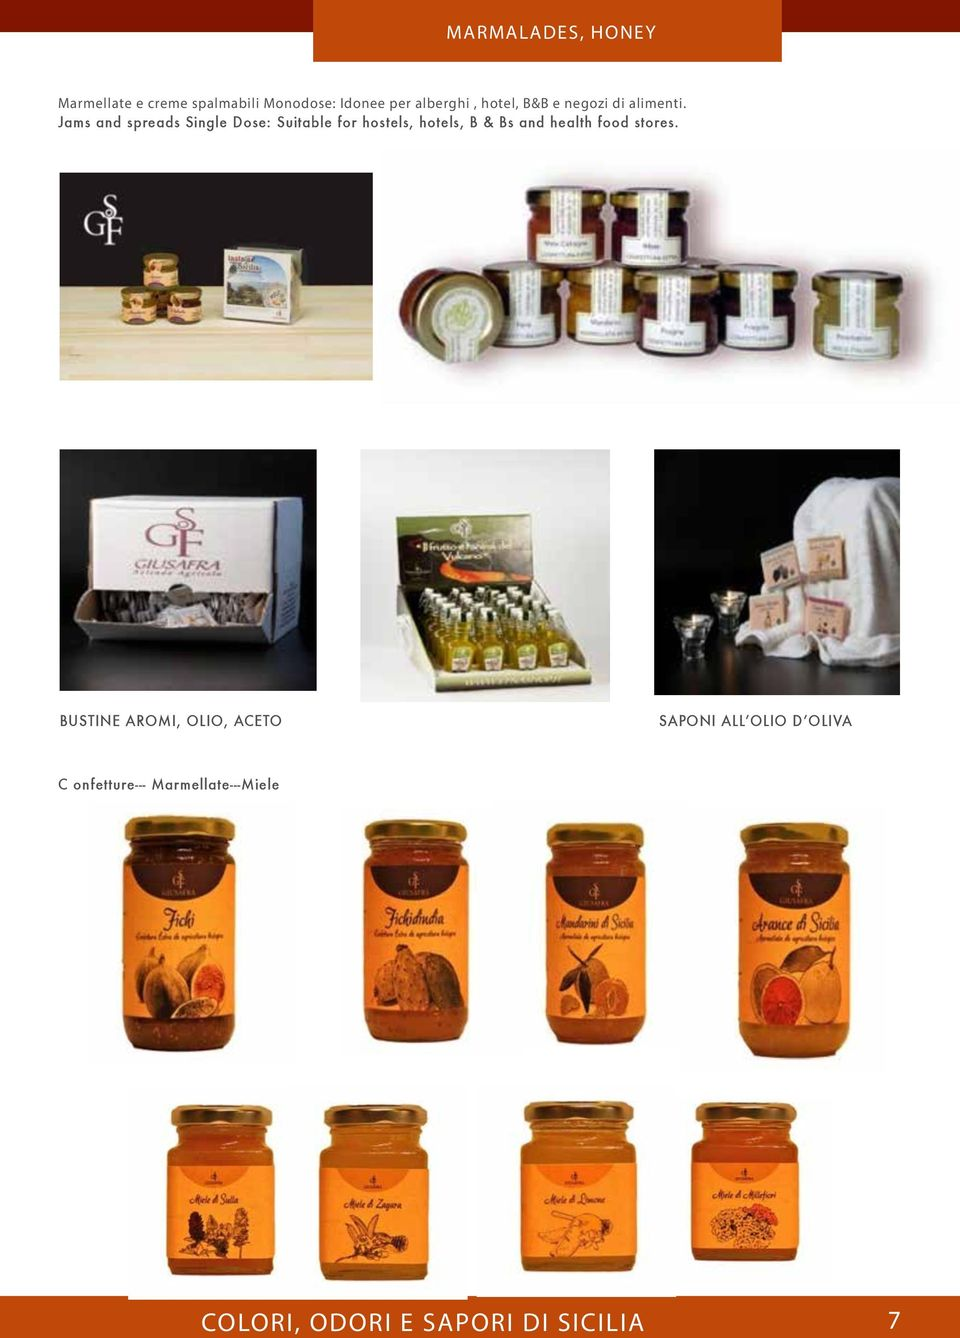 Jams and spreads Single Dose: Suitable for hostels, hotels, B & Bs and health